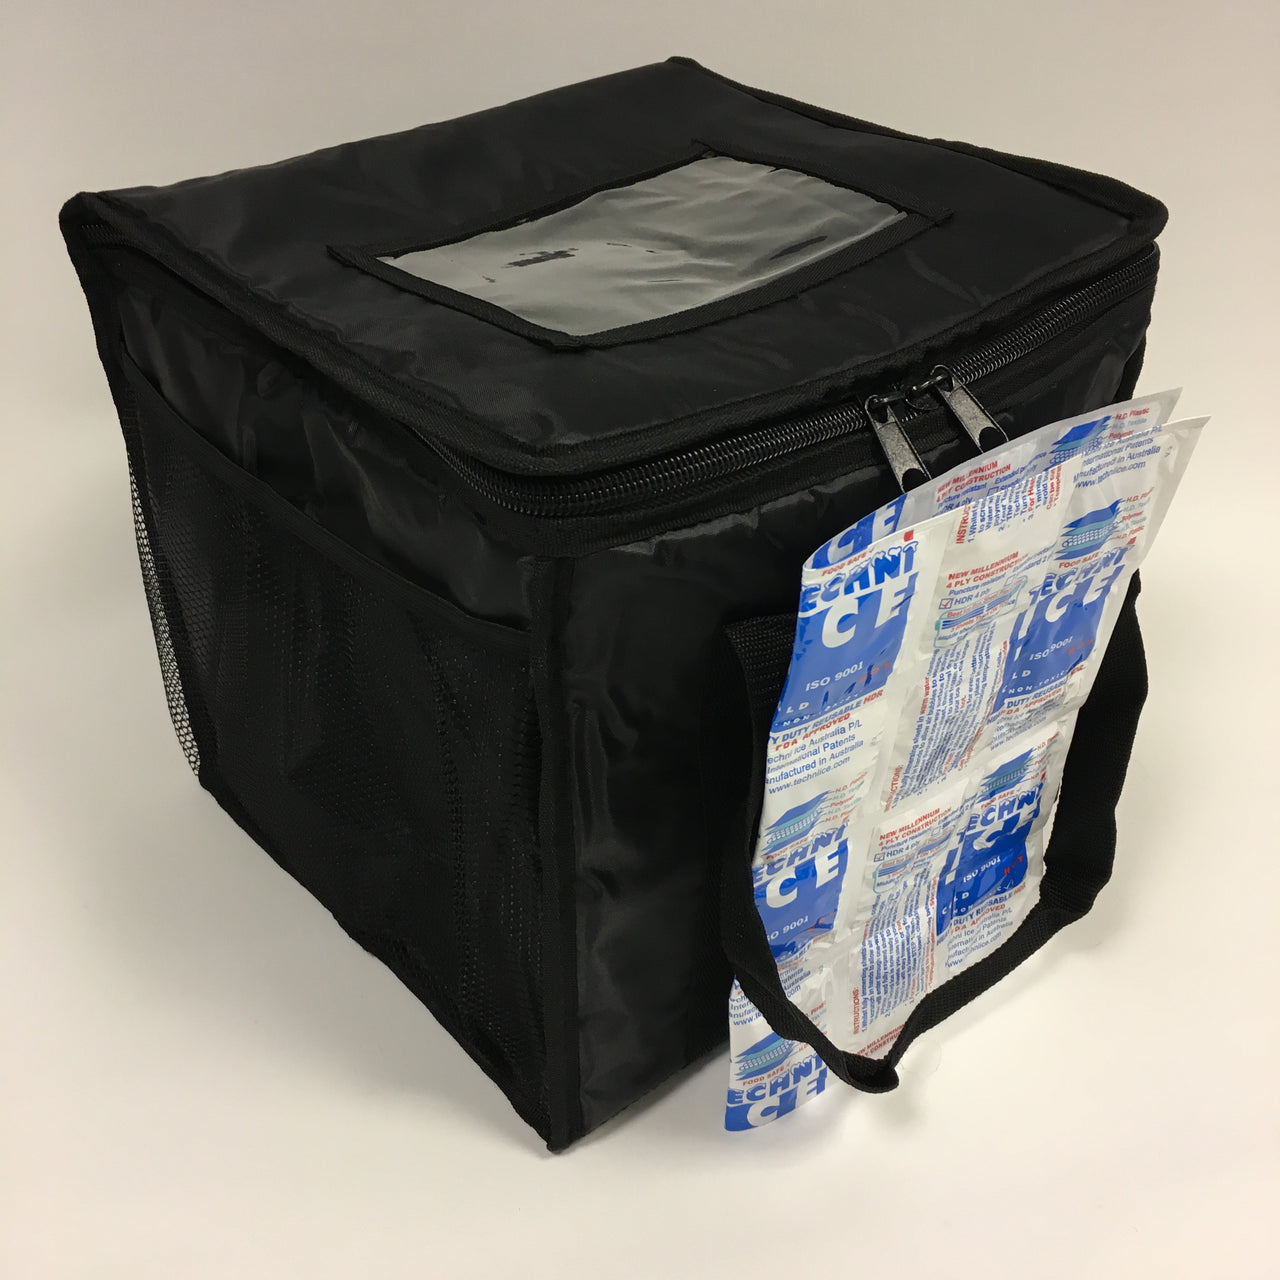 Delivery Bag with heat pad